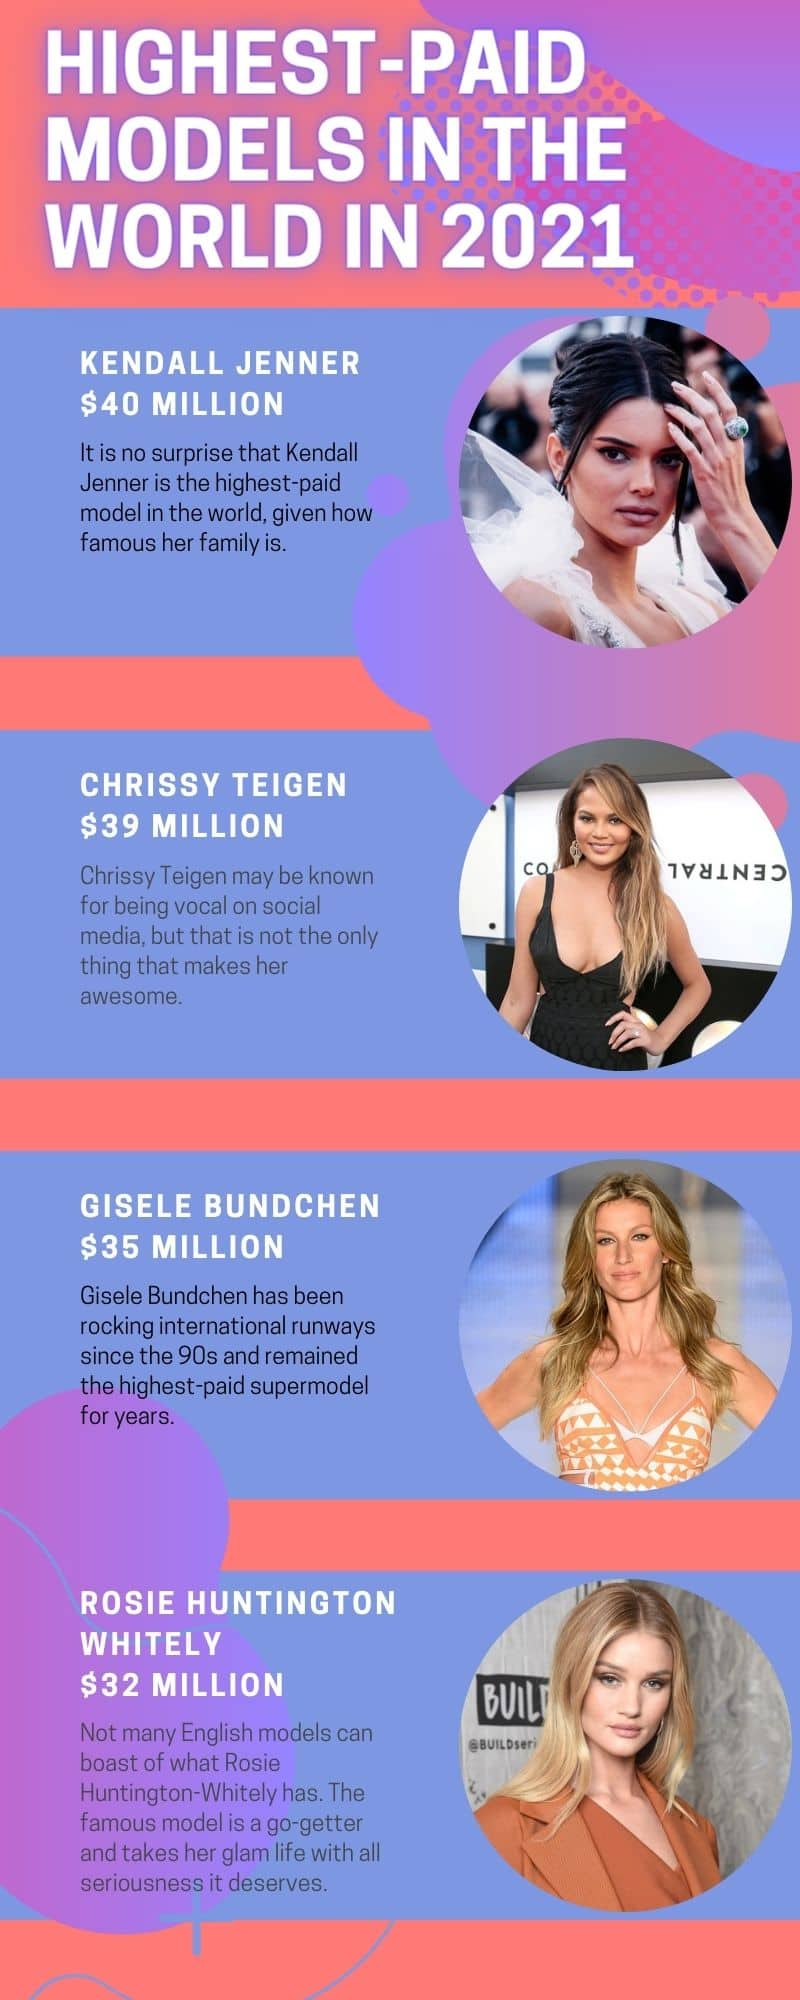 highest-paid models in the world